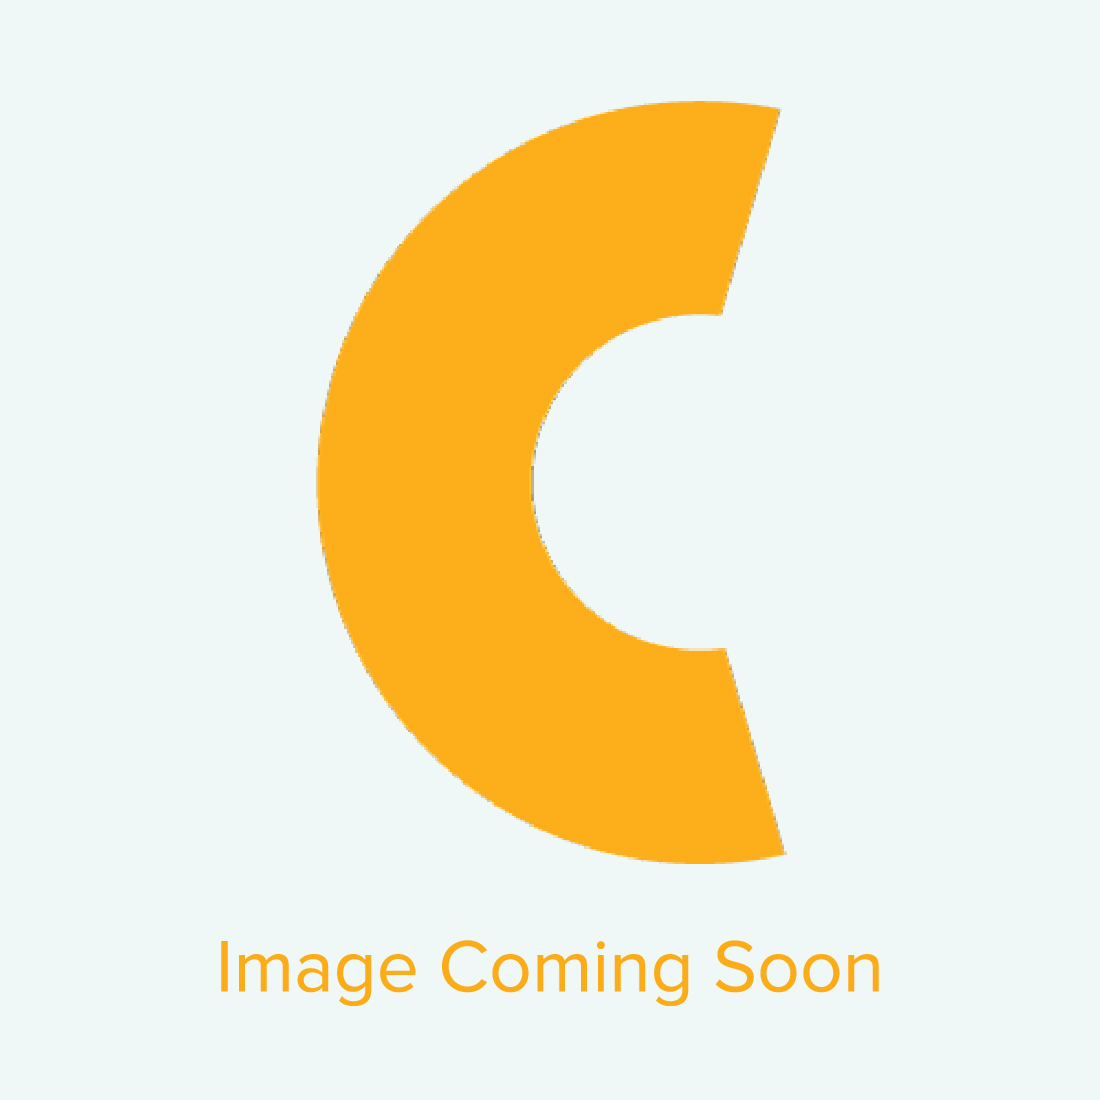 HP 64-inch Latex 365 Printer